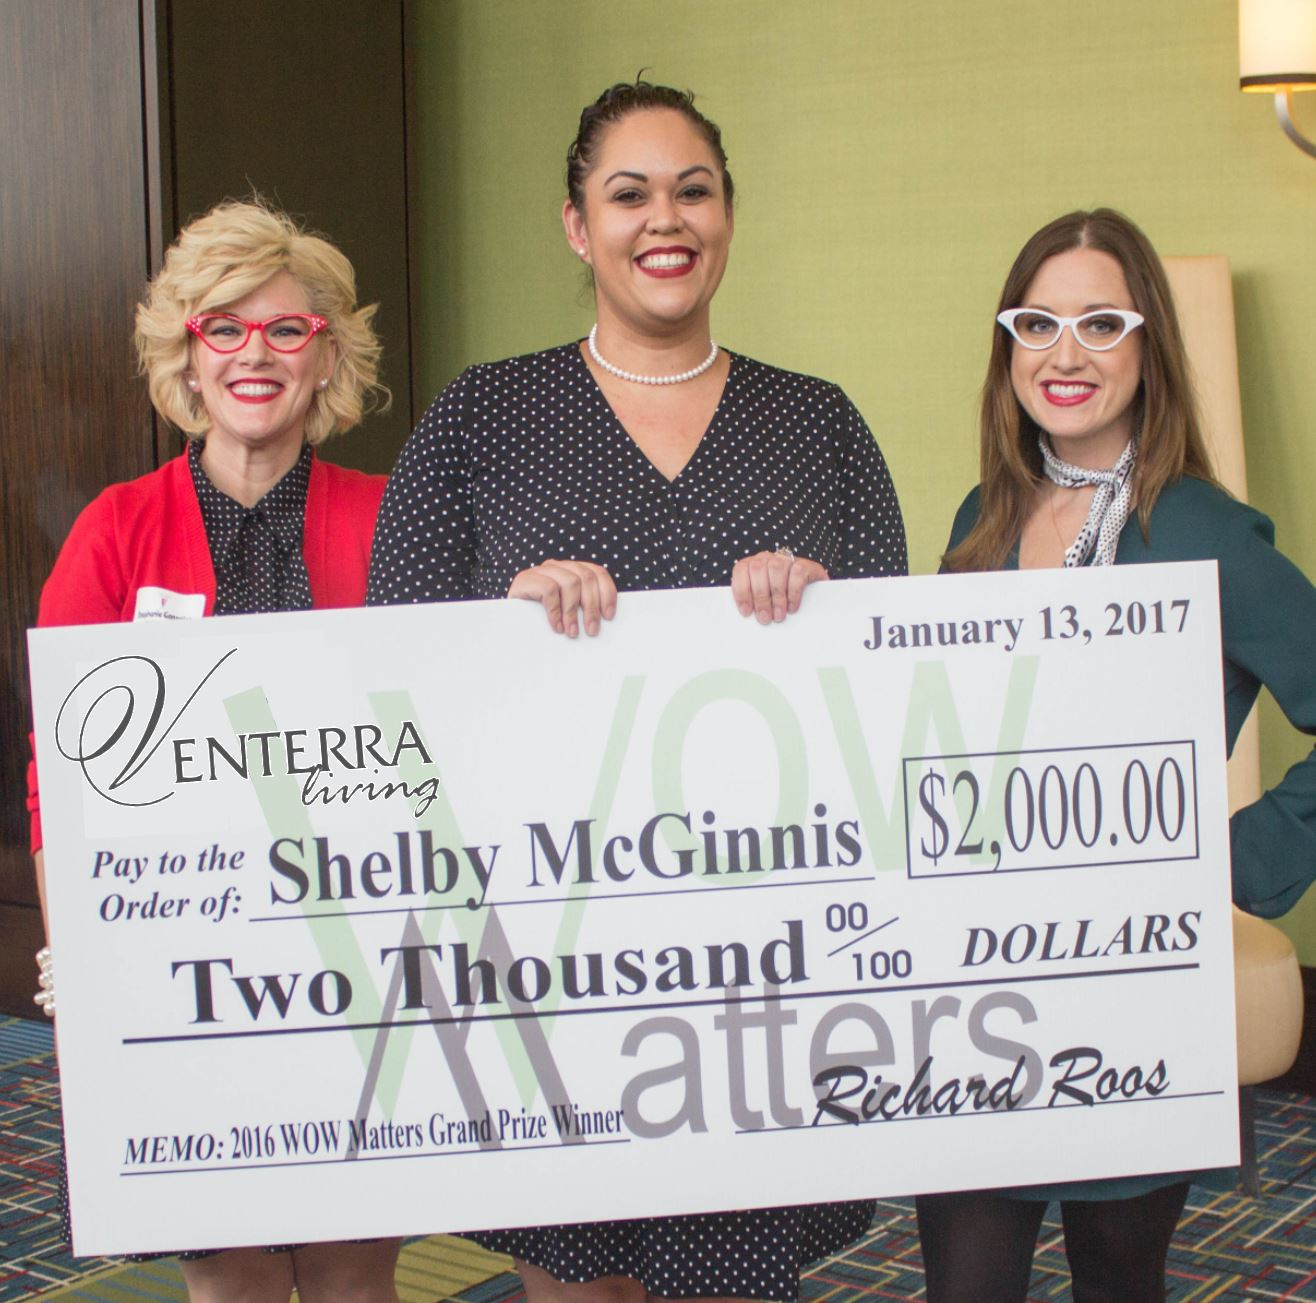 2016 WOW Grand Prize Winner - Shelby